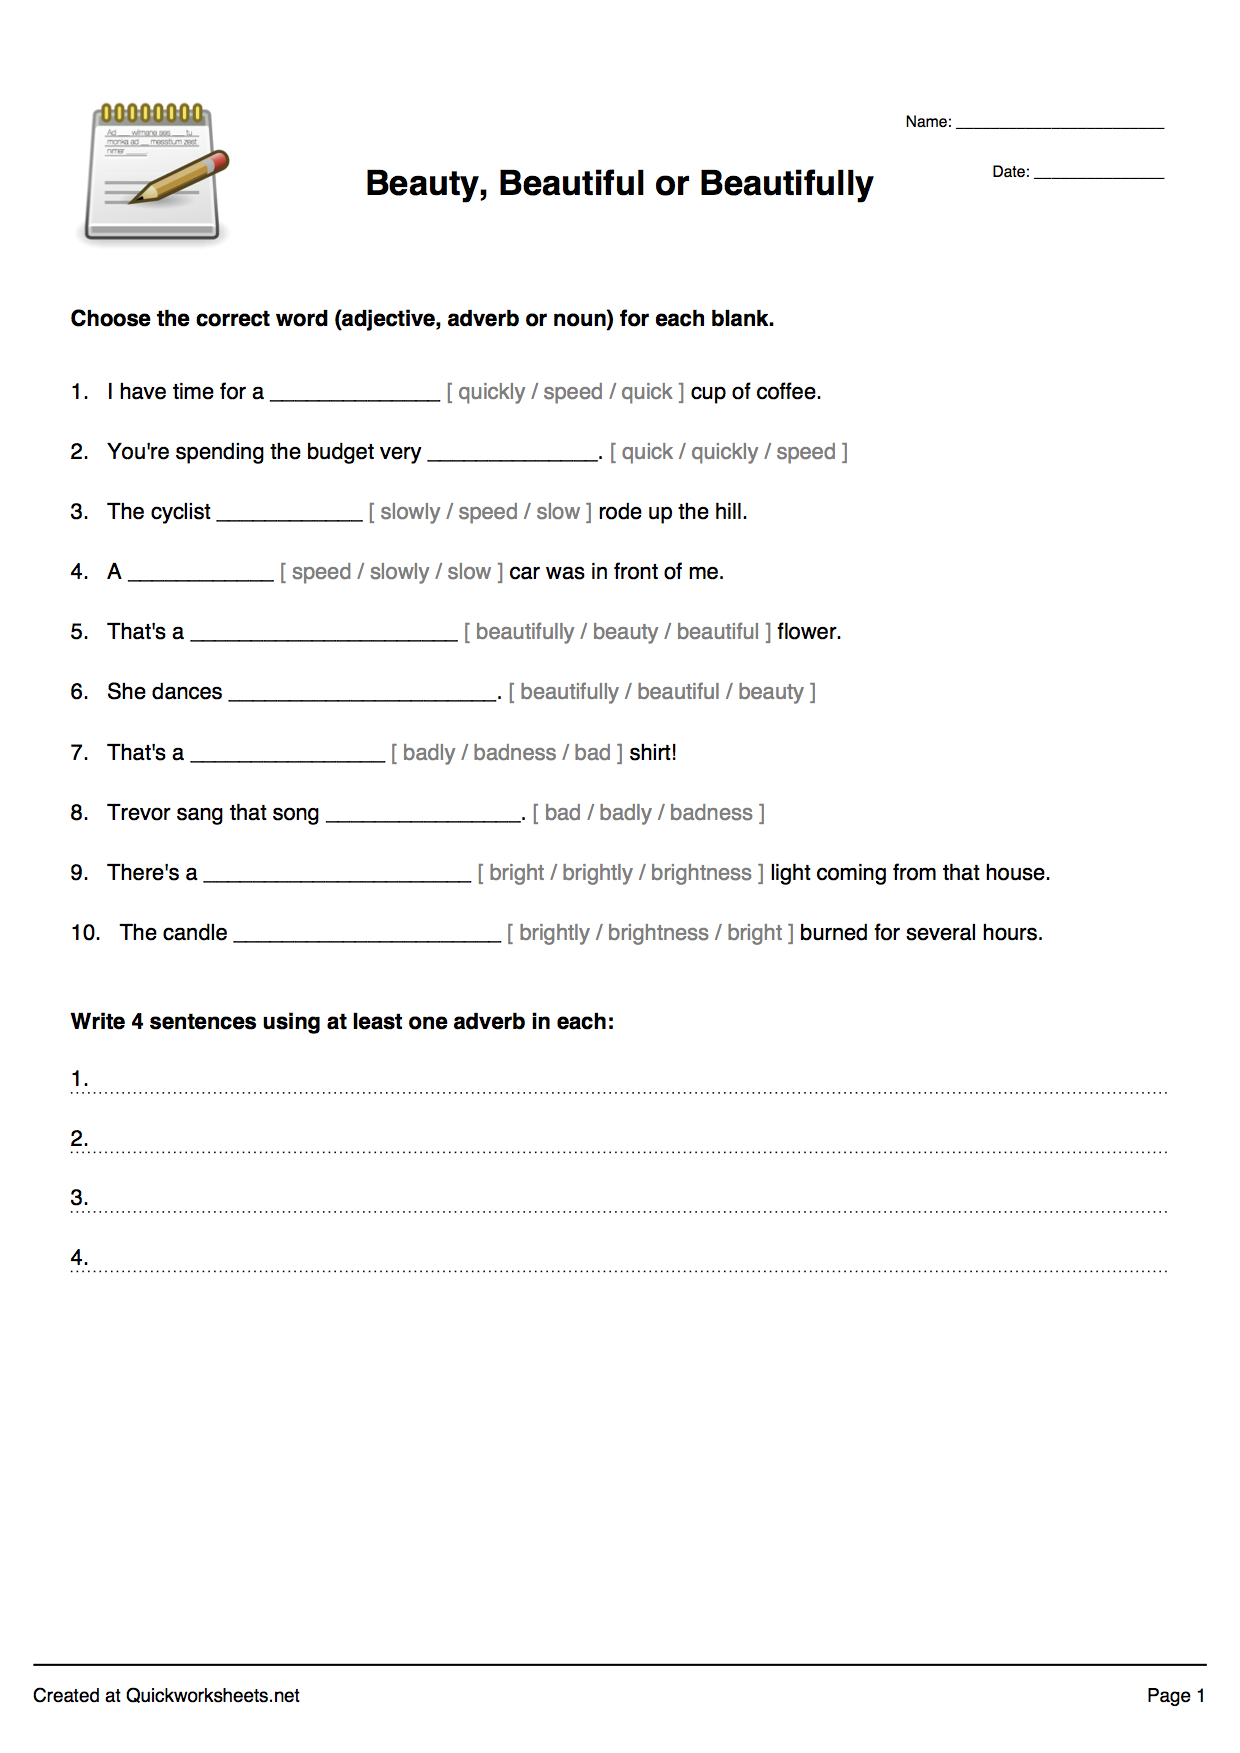 Word Scramble Wordsearch Crossword Matching Pairs And Other In Vocabulary Worksheet Generator